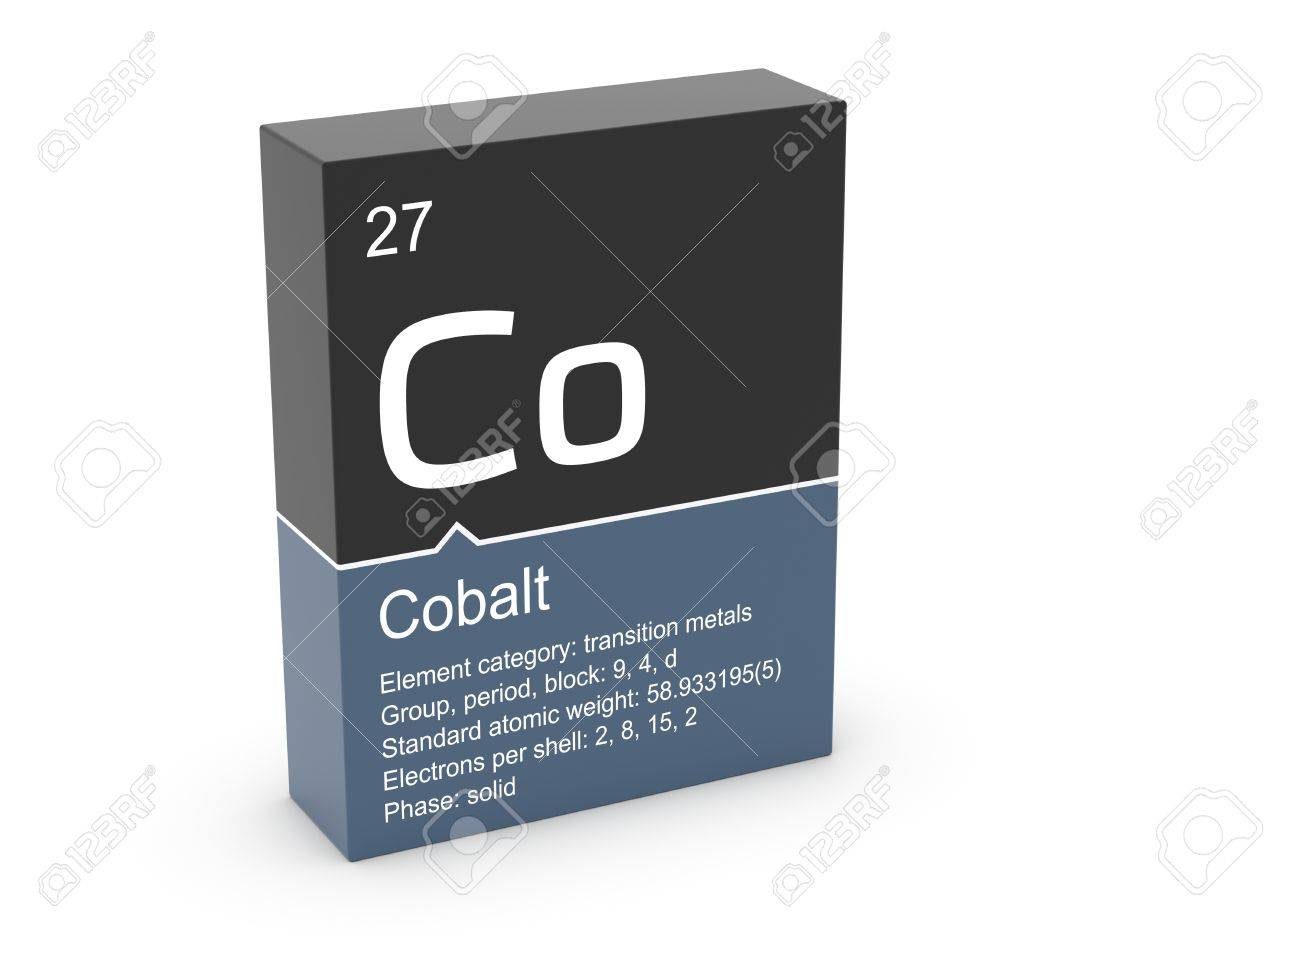 Cobalt periodic table image collections periodic table images cobalt from mendeleev s periodic table stock photo picture and cobalt from mendeleev s periodic table gamestrikefo Image collections